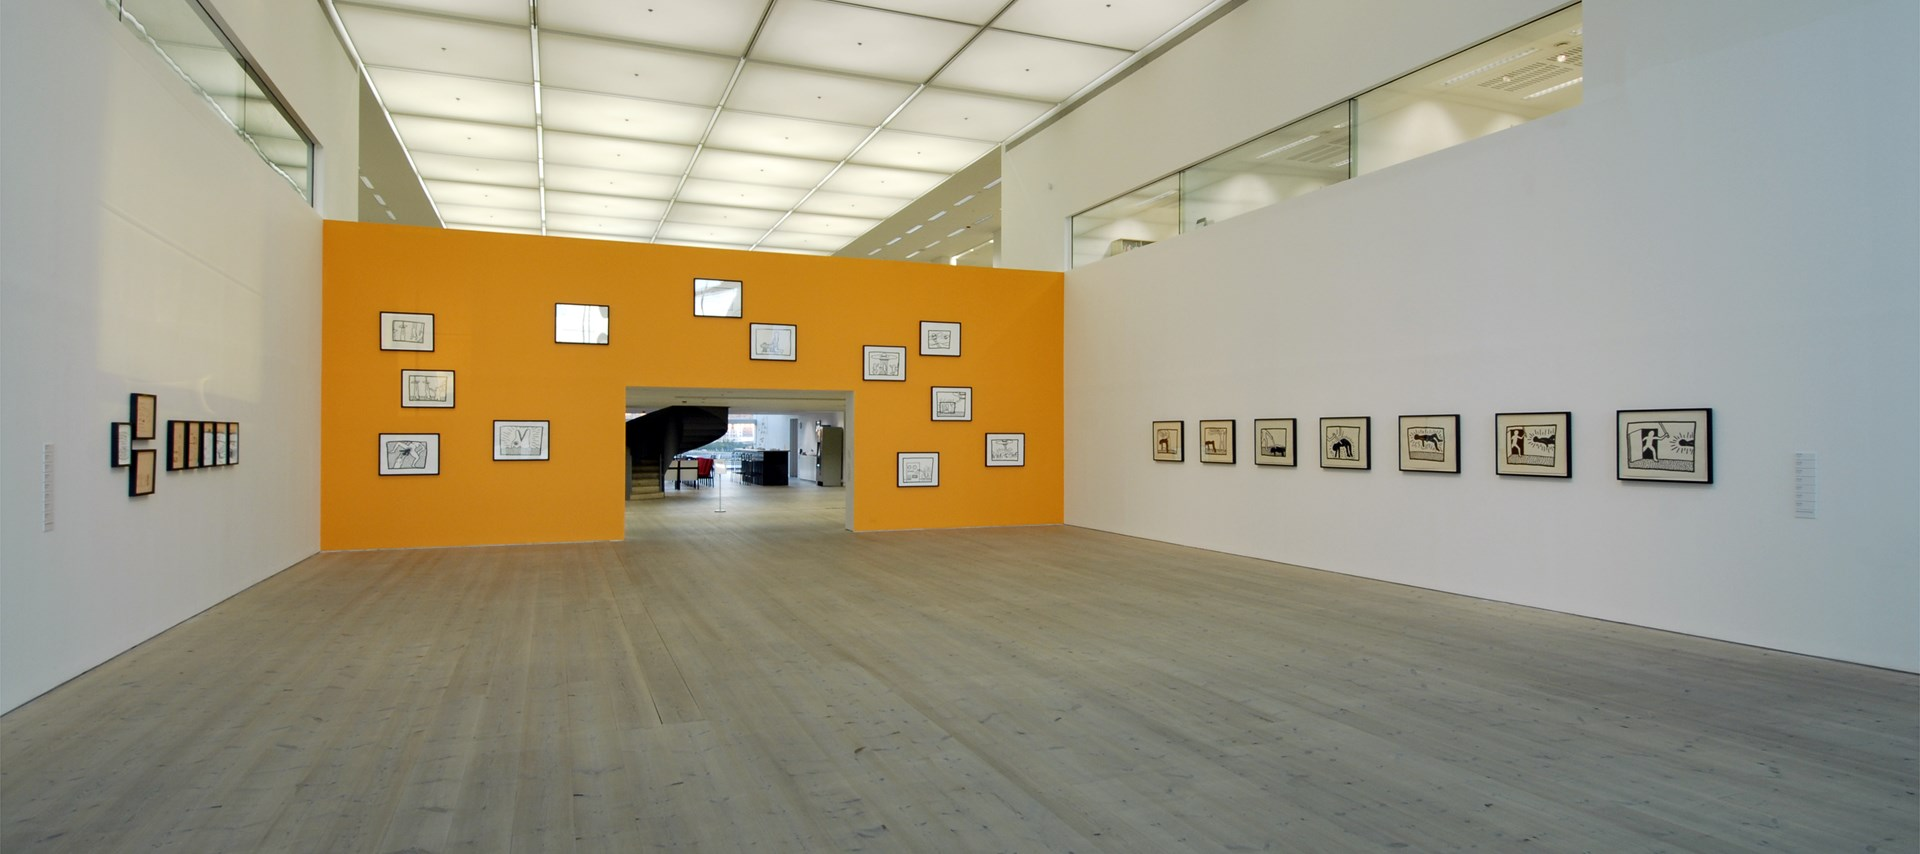 Keith Haring: Early Drawings: Installation shot by Colin Davison